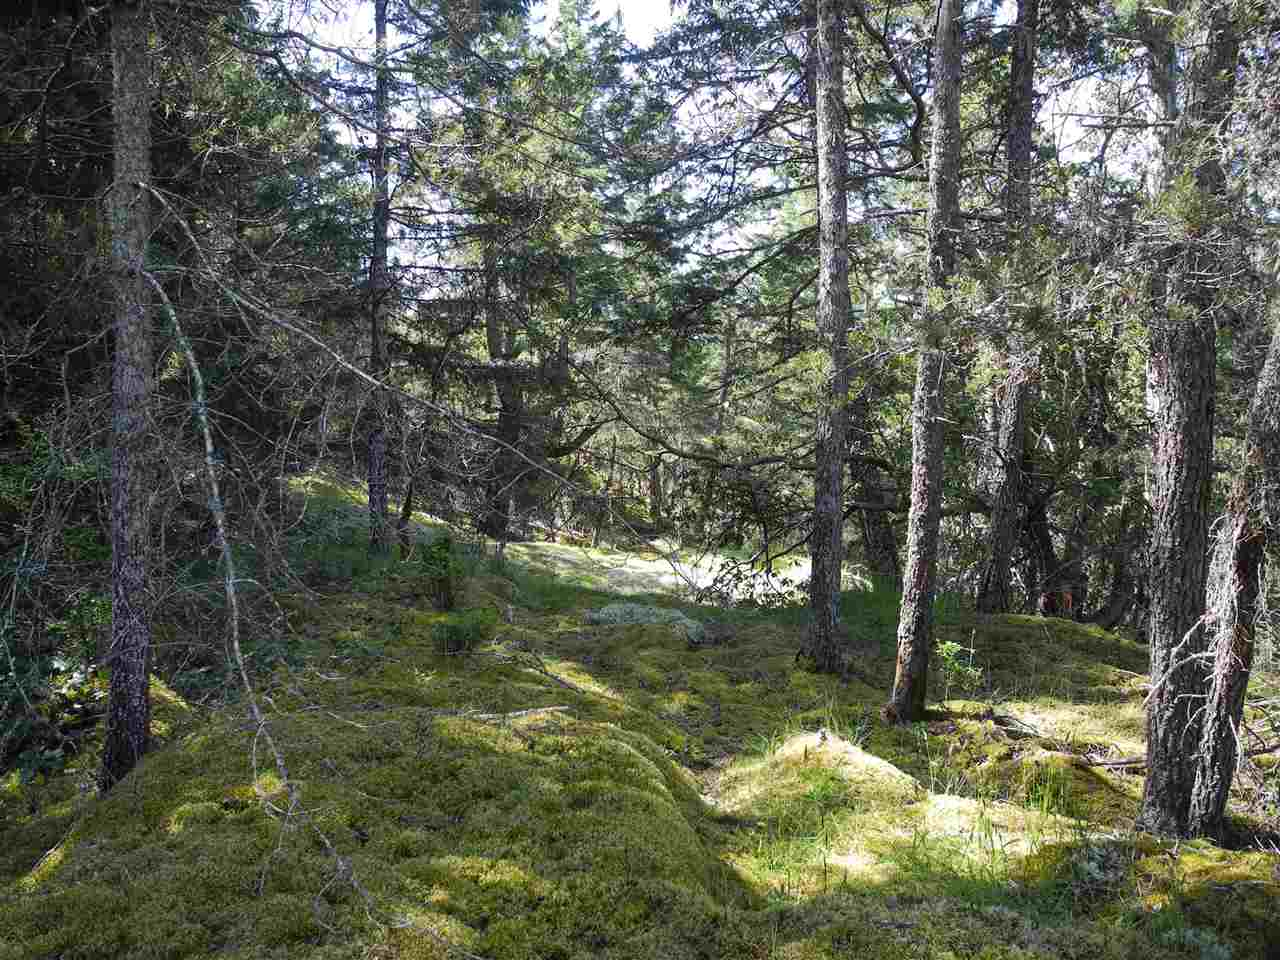 Photo 6: 4436 MCLINTOCK Road in Pender Harbour: Pender Harbour Egmont House for sale (Sunshine Coast)  : MLS(r) # R2068891